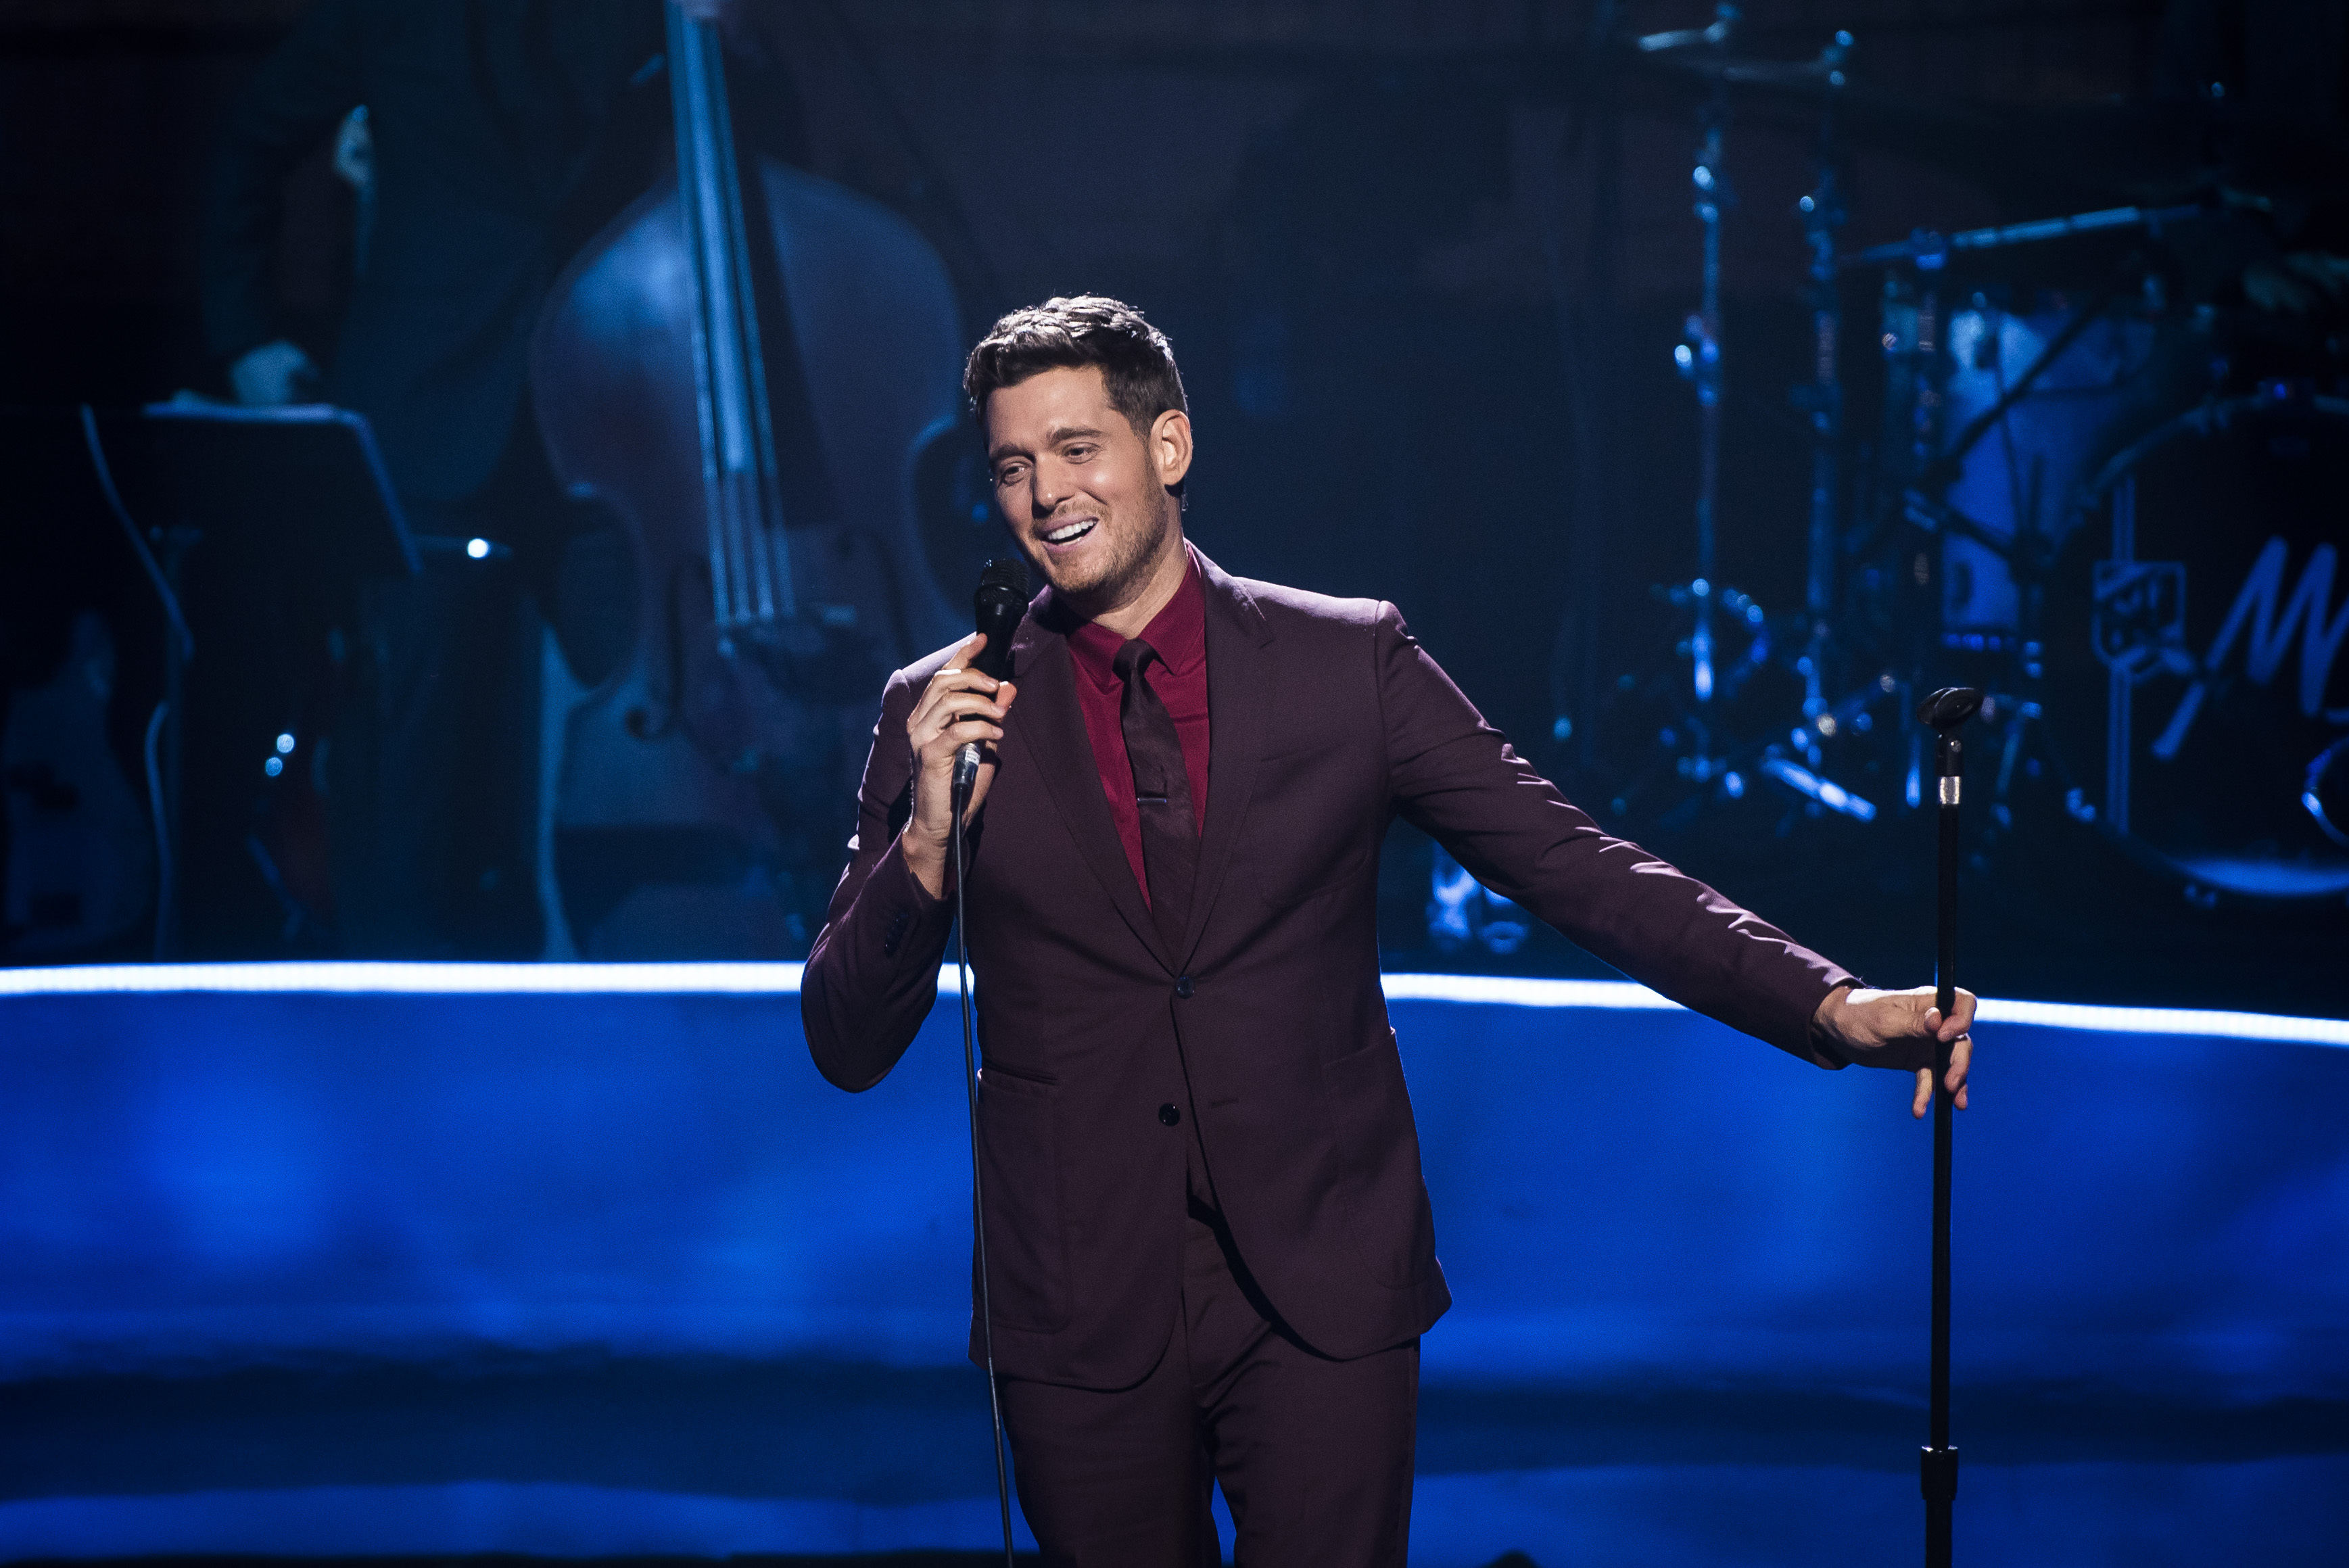 Michael Buble Just Announced That He's Officially Retiring From Music